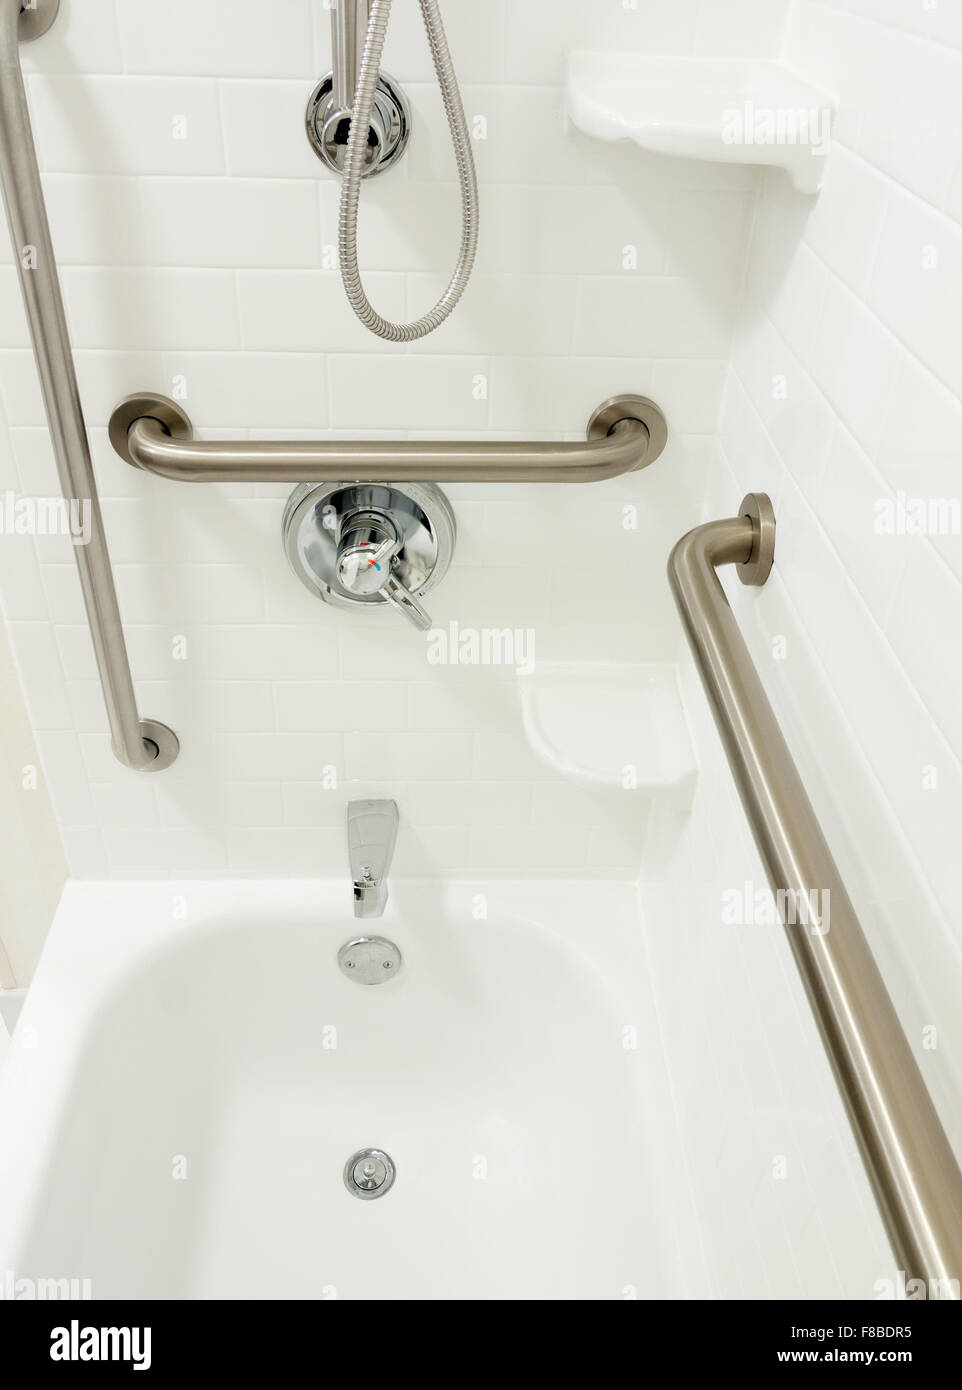 Disabled handicapped shower bathtub with grab bars - Stock Image